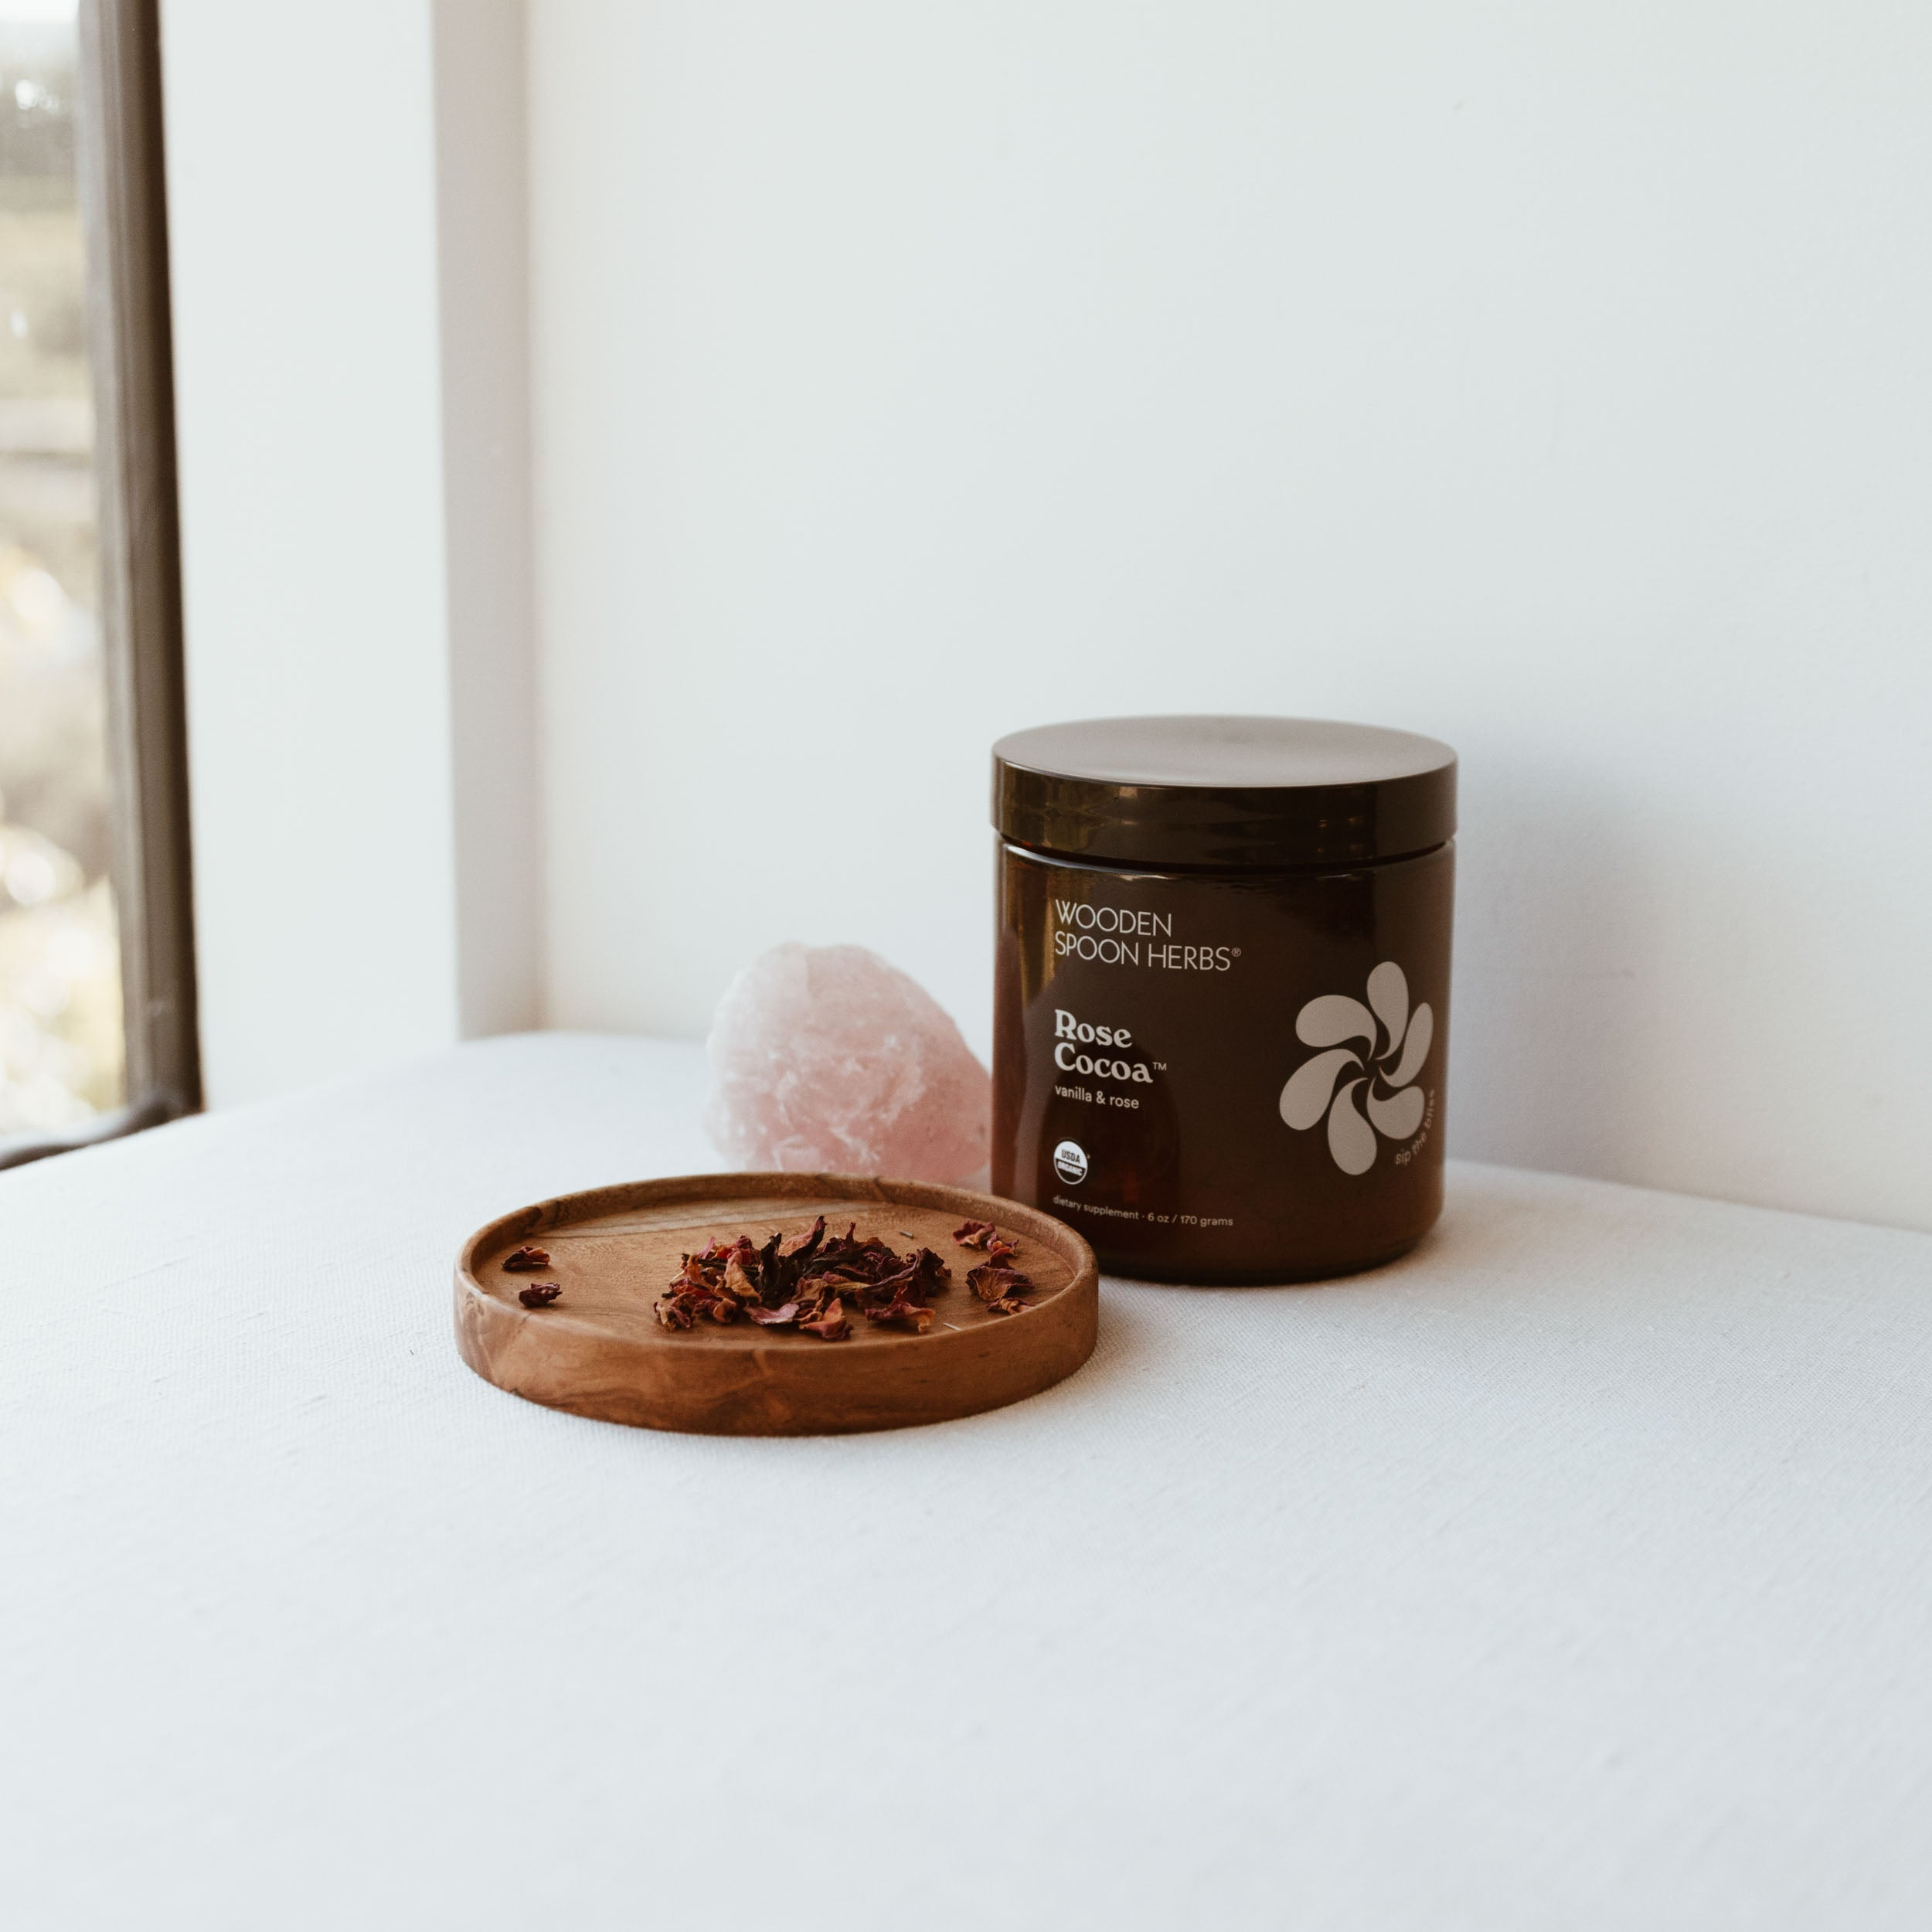 Wooden Spoon Herbs Australian Stockist Rose Cacao